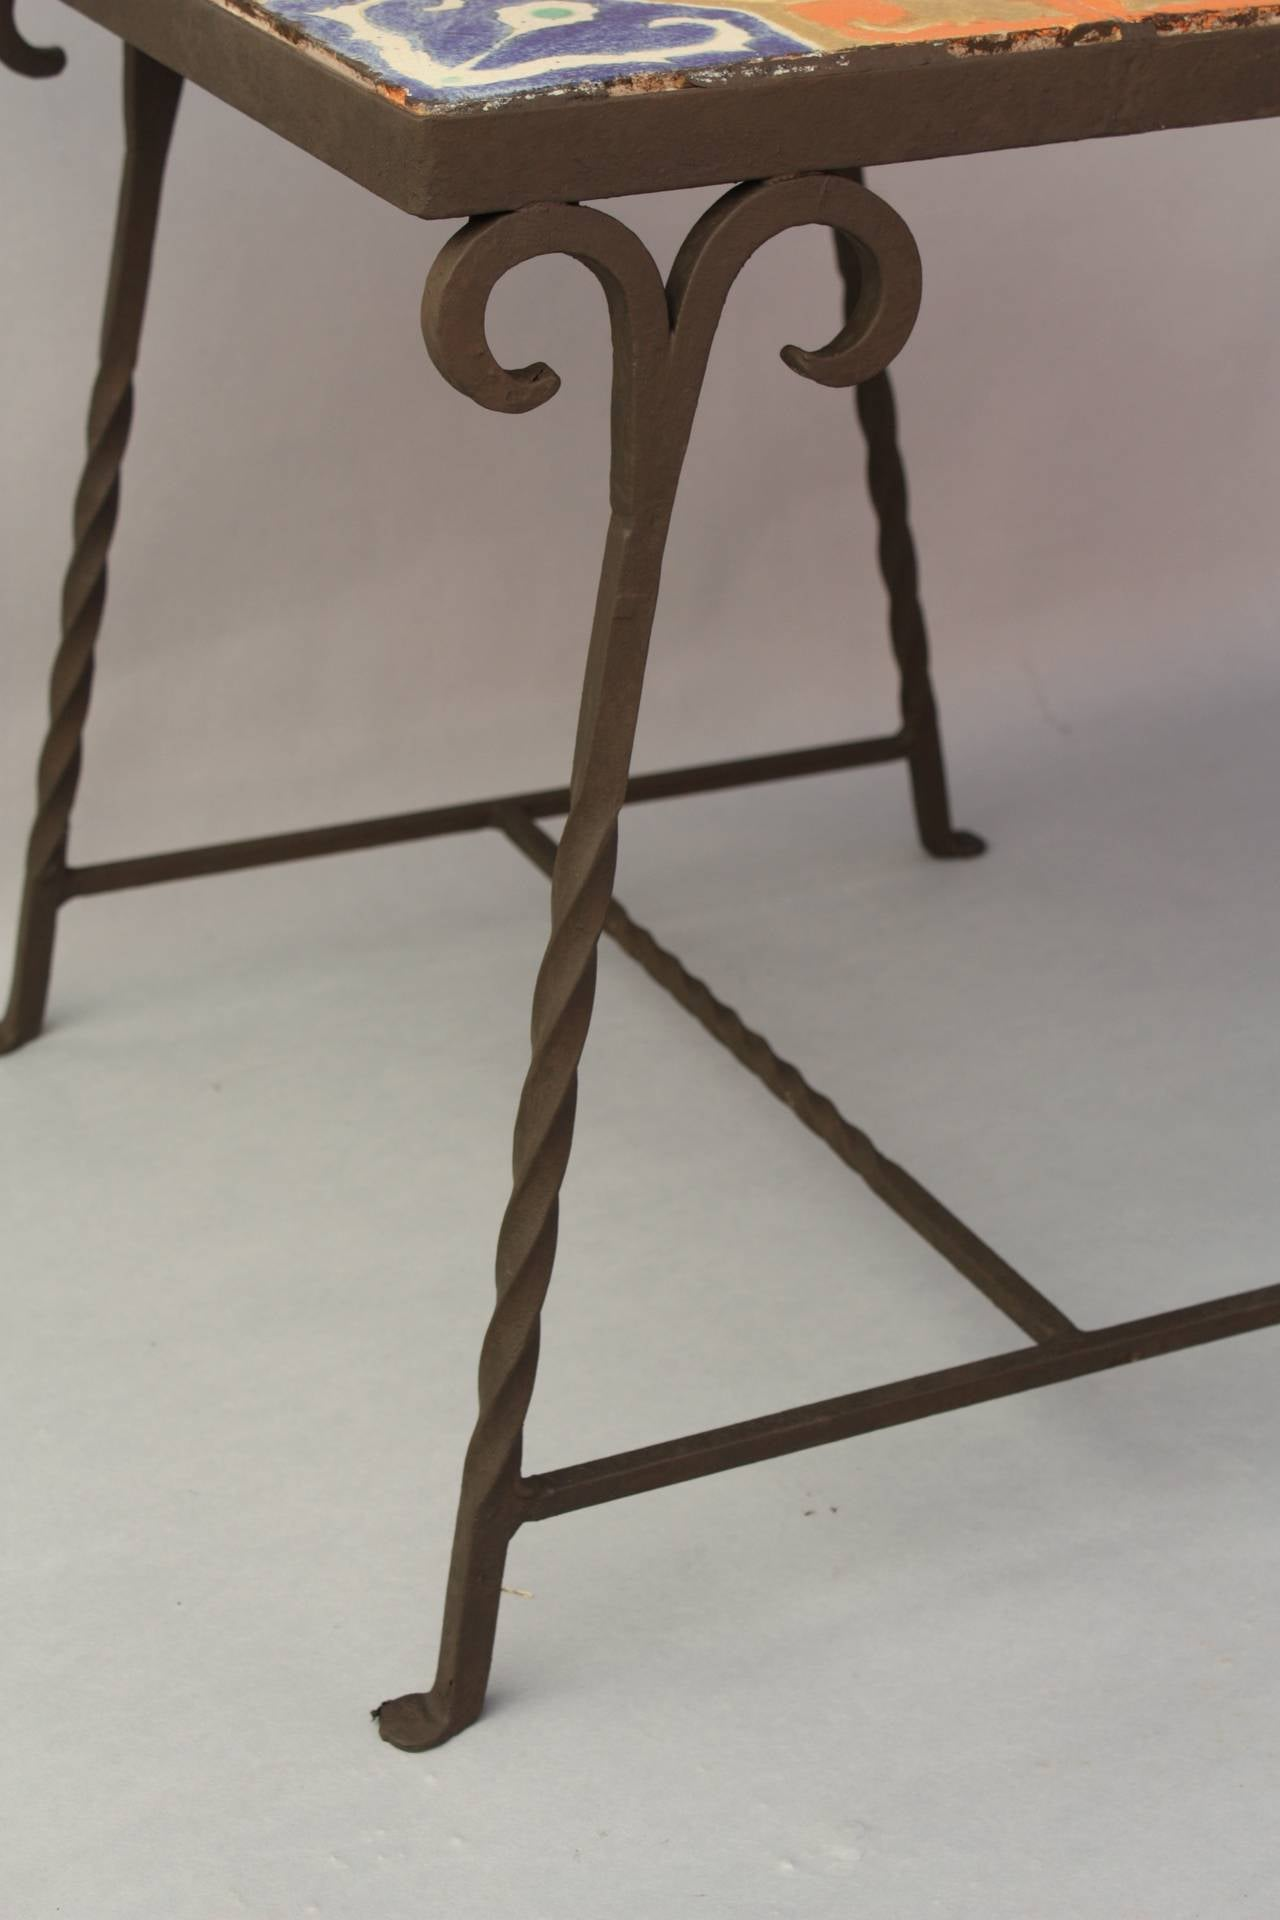 Rancho Monterey Antique Early California Tile Table In Iron Base For